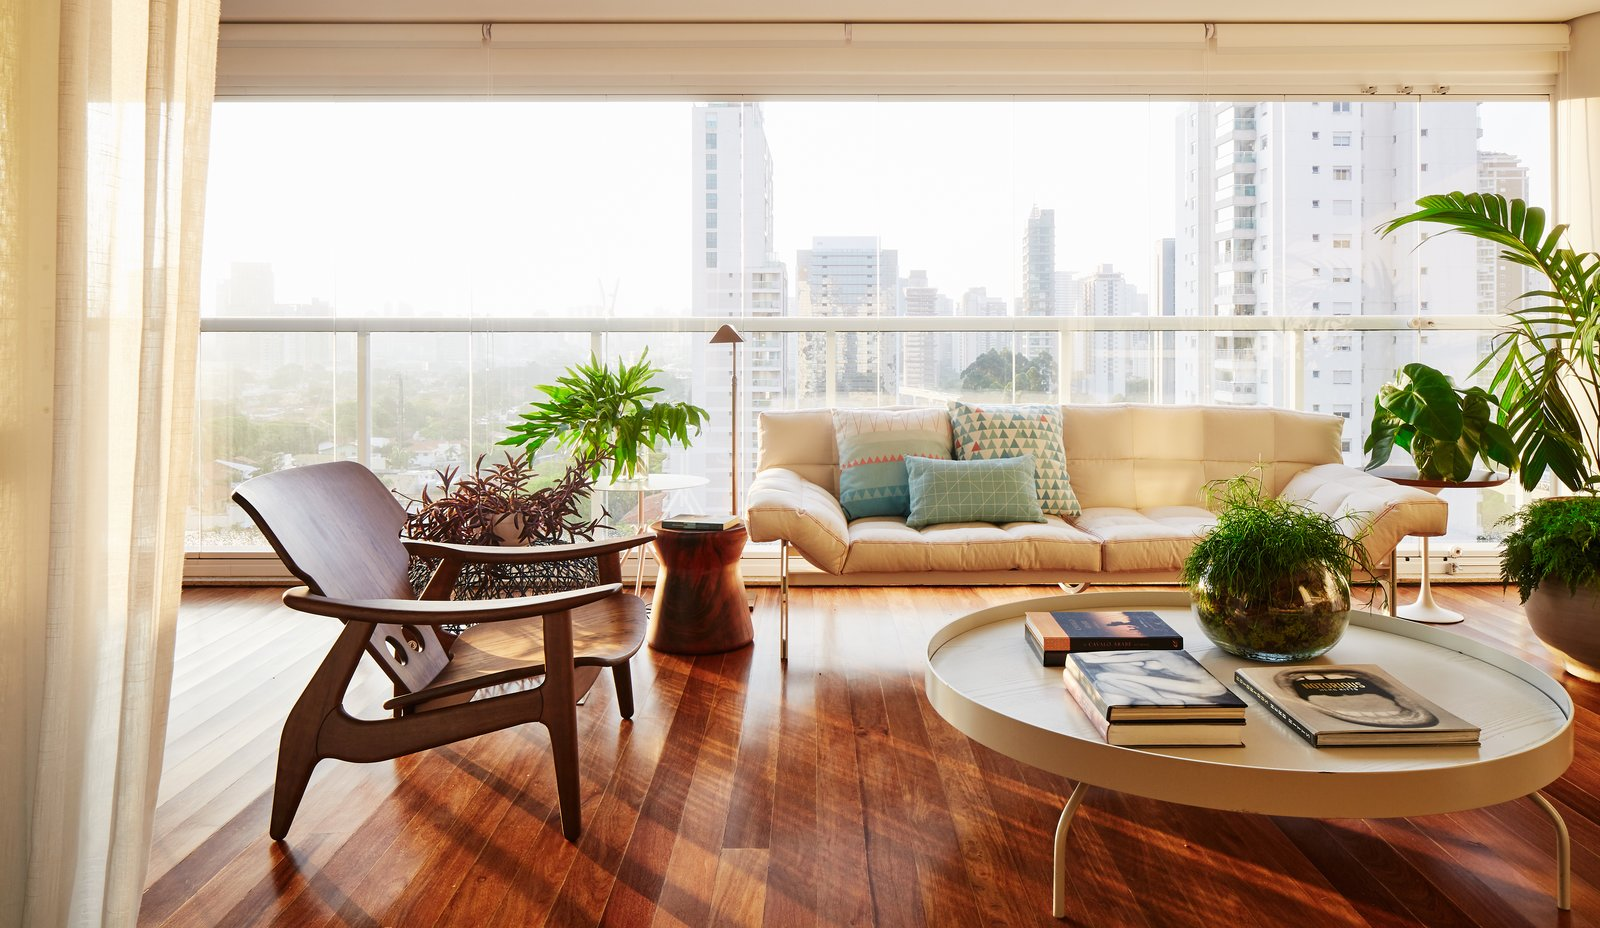 City views courtesy of large windows which also provide ample natural light.